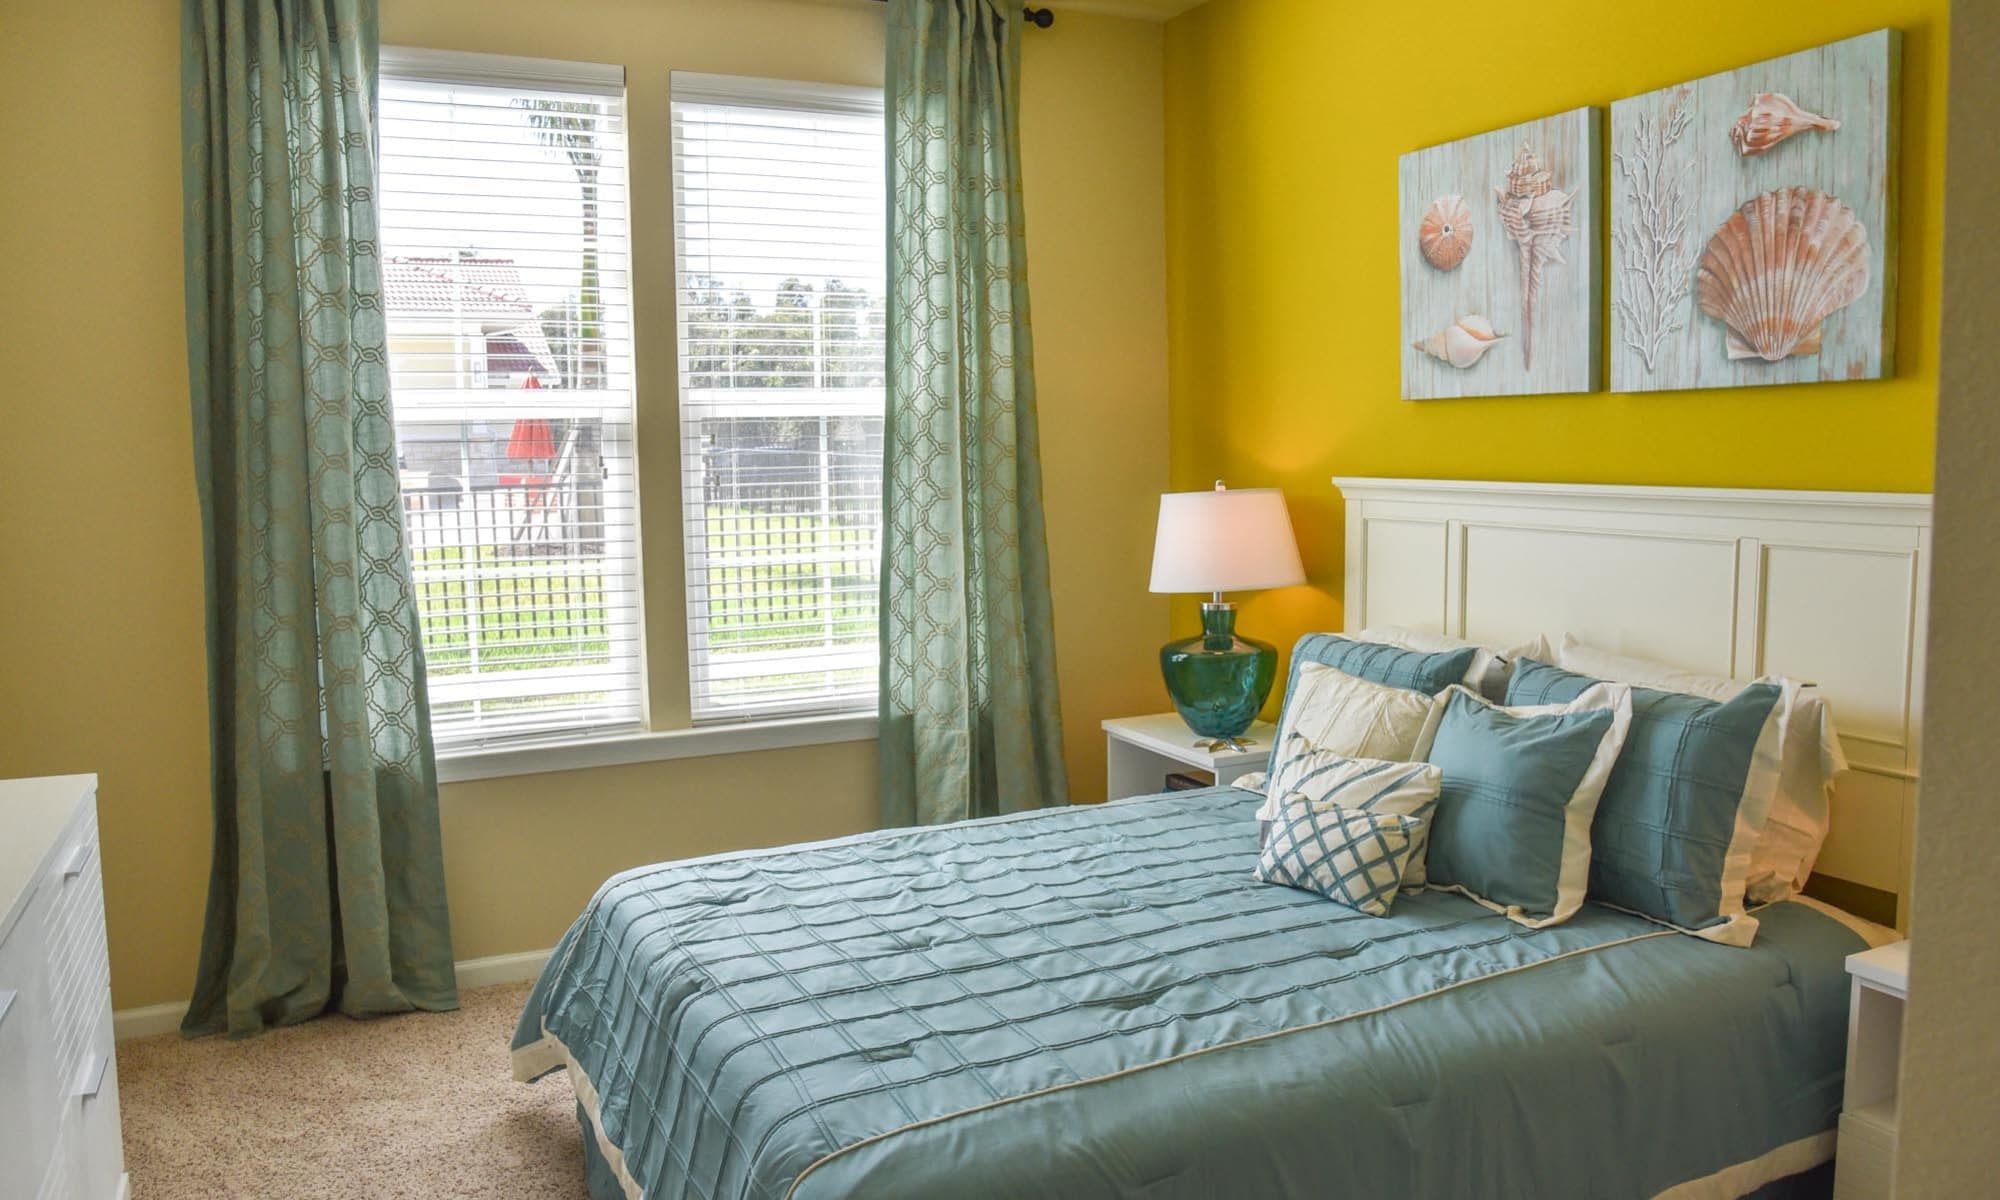 Apartments in Port St. Lucie, FL